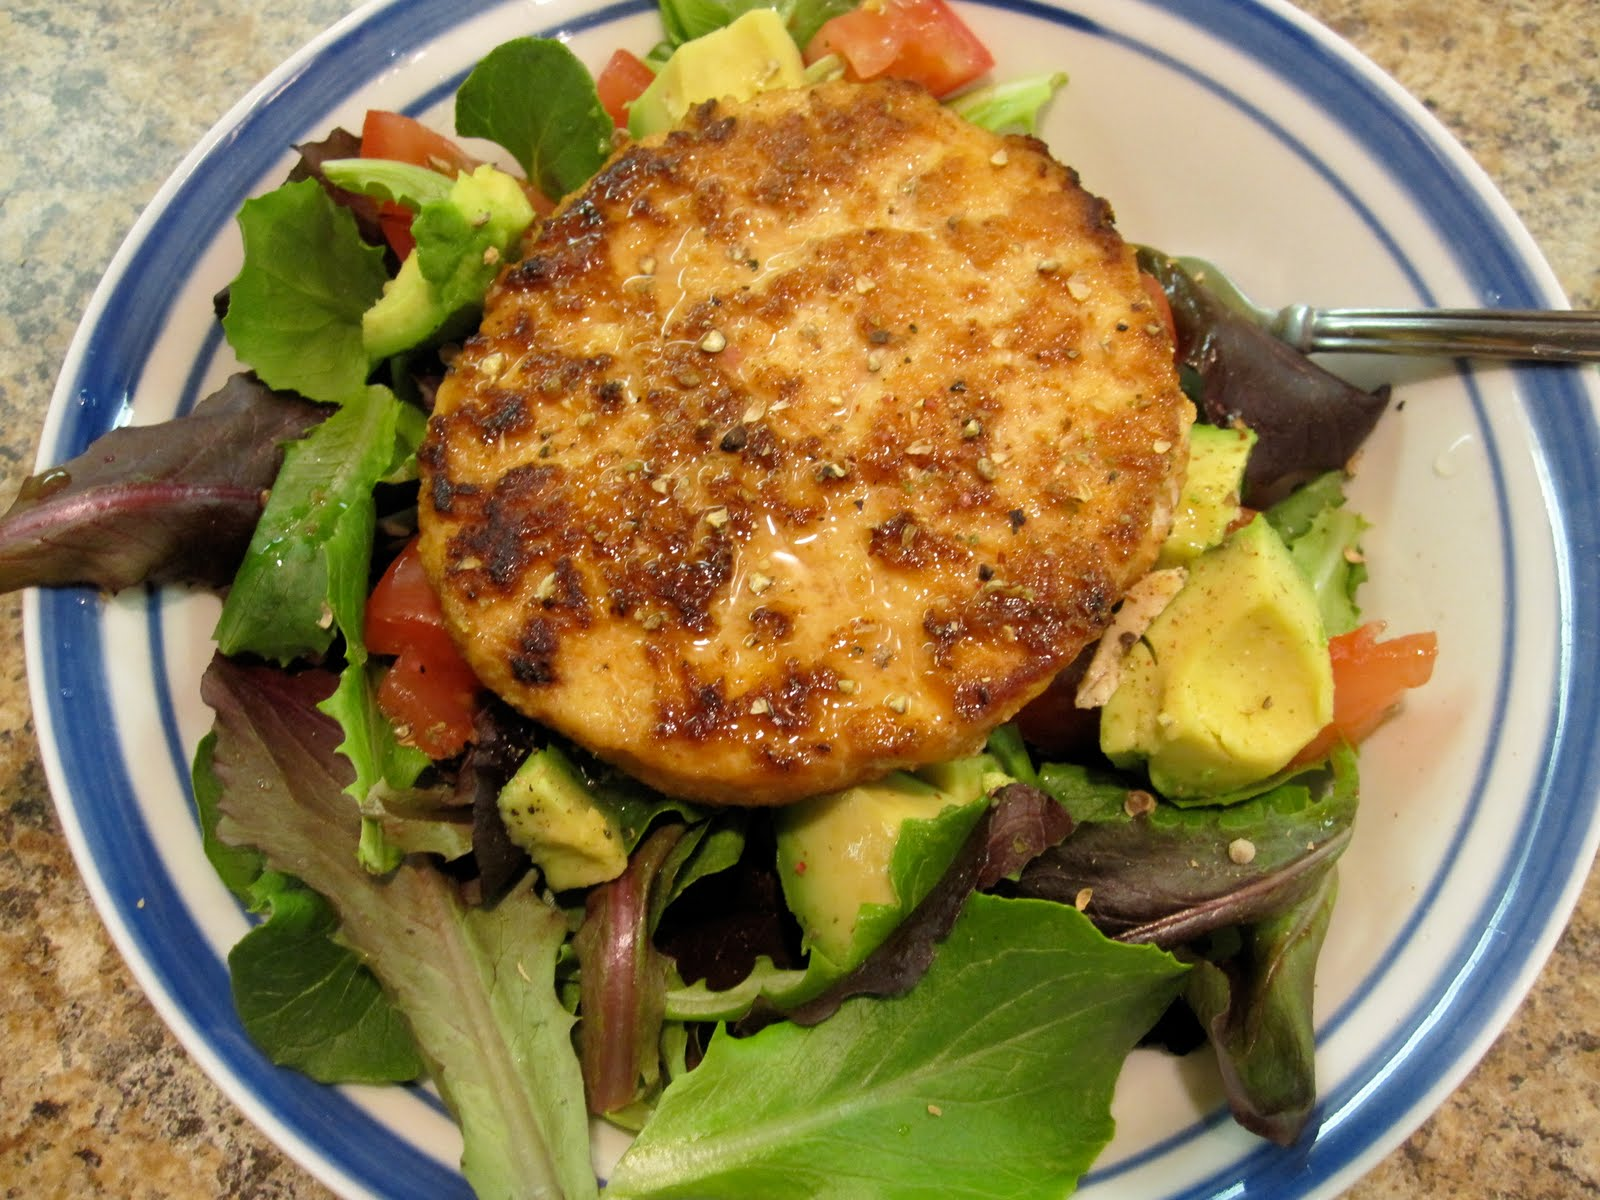 Fit 2 Wed: Costco's Salmon Burgers